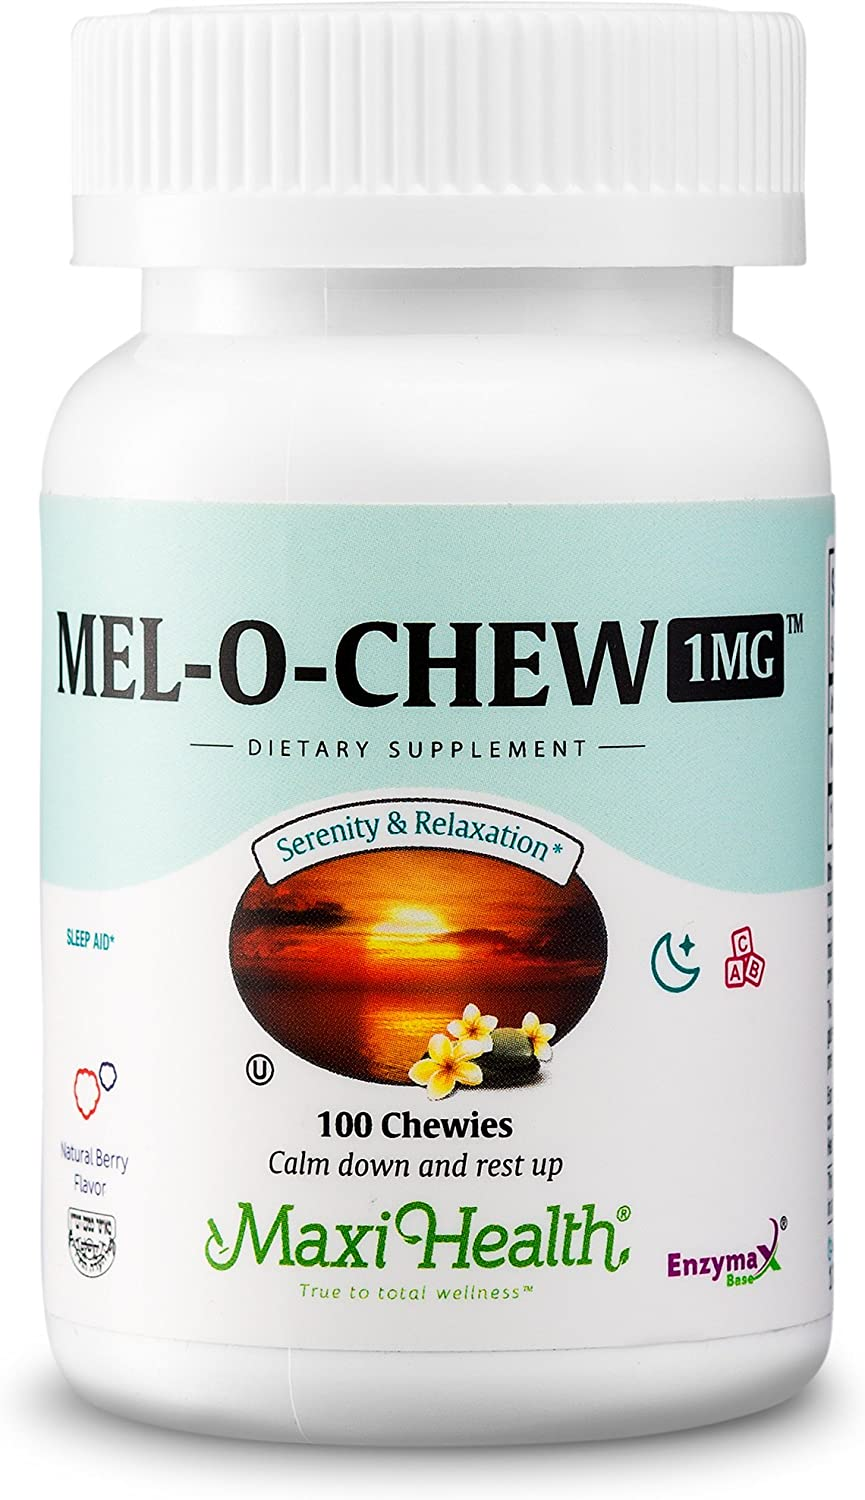 Mel-O-Chew Melatonin for Kids – 1mg Chewable Sleep Aid Tablets - Natural Supplement for Children And Adults - Helps Fall Asleep Faster And Stay Sleeping Longer – 100 Count